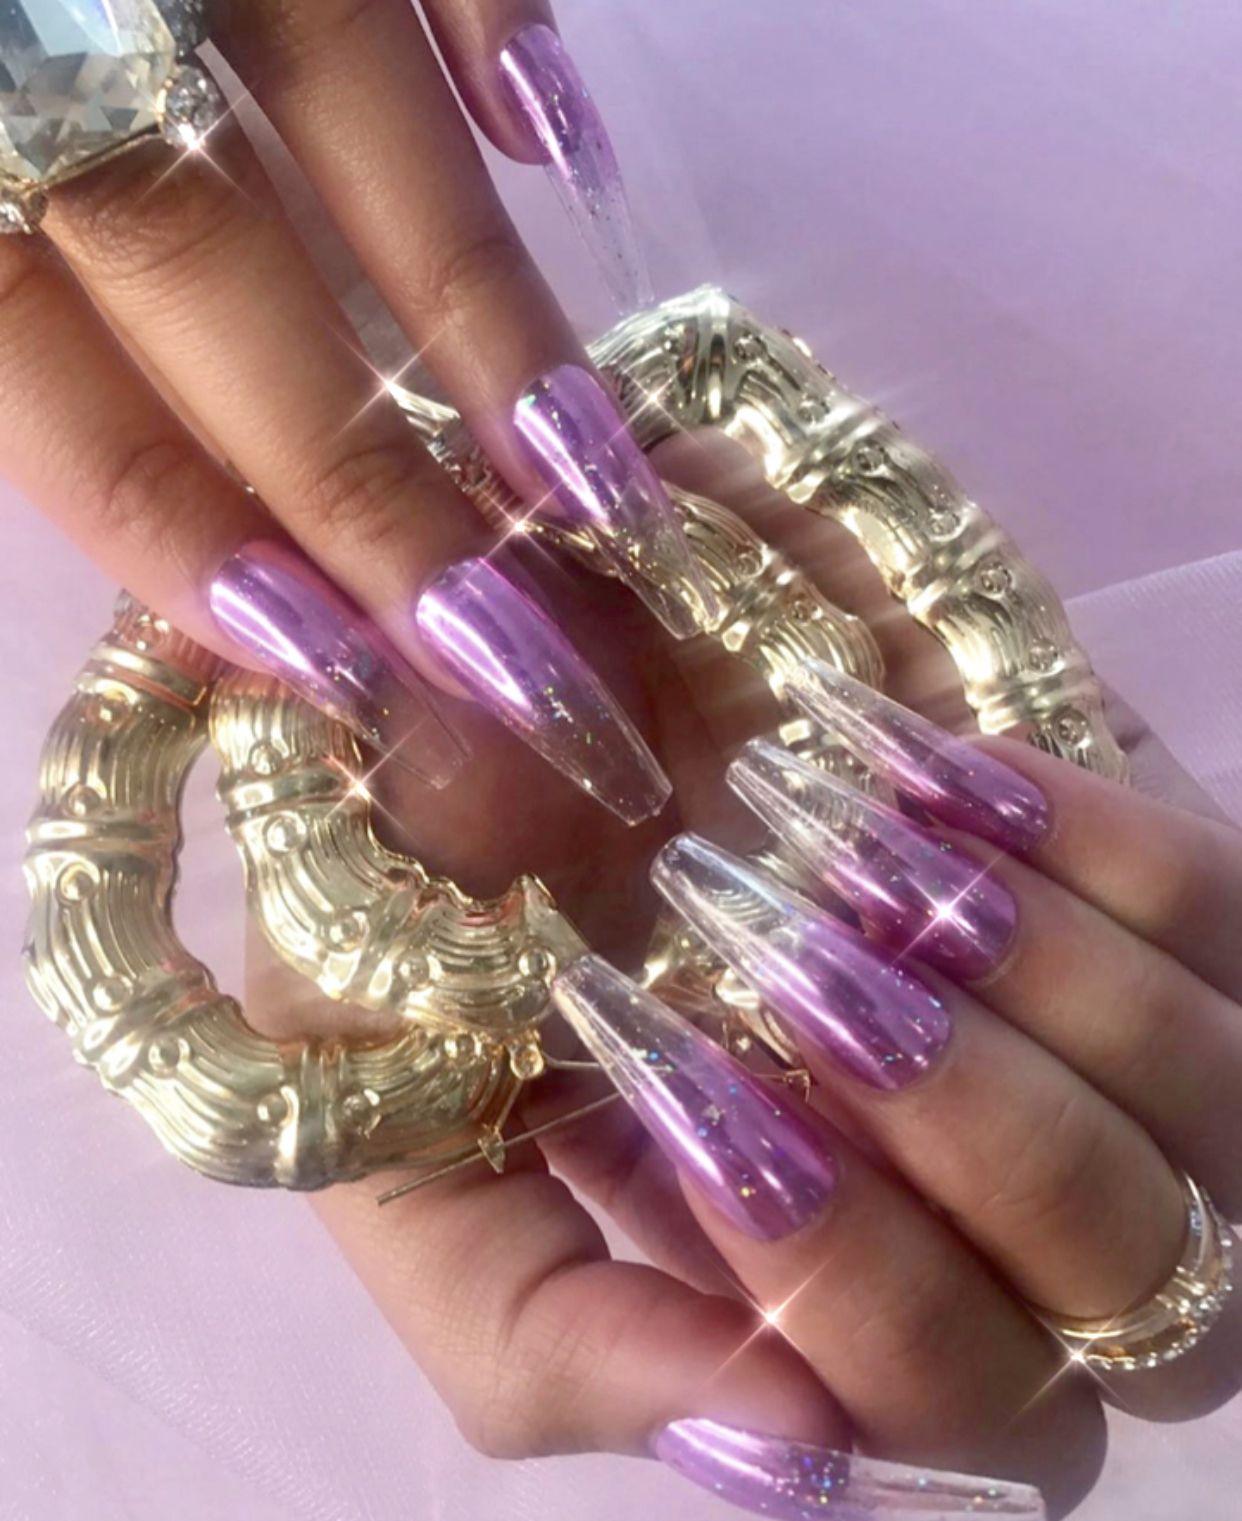 ️𝓚𝓪𝔂𝓵𝓪 𝓚𝓲𝓼𝓼 ️ Fashion nails, Prom queens, Purple aesthetic